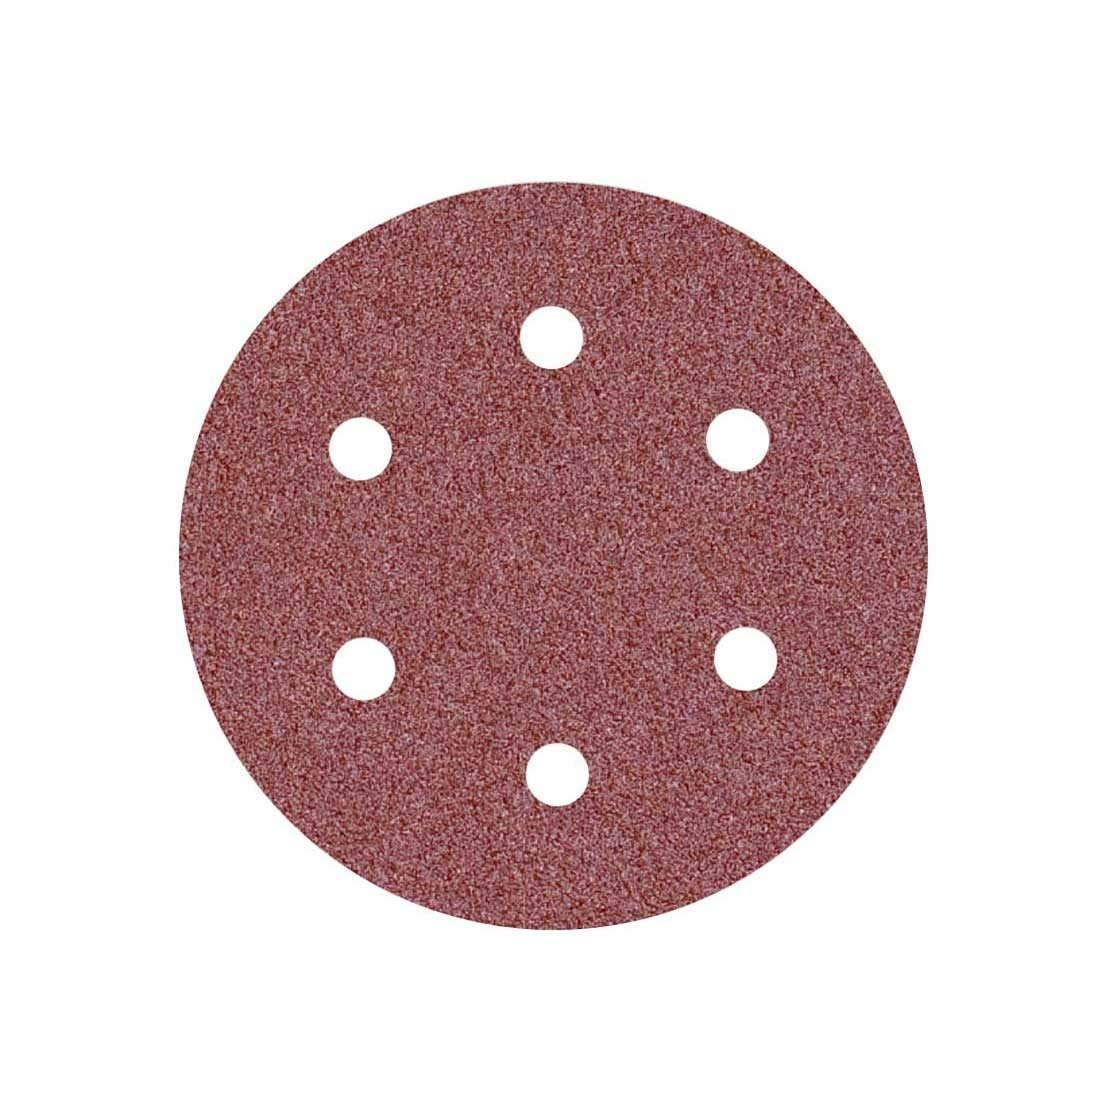 25 MioTools Hook & Loop Sanding Discs for Drywall Sanders Ø 225 mm - Grit 100-6 hole